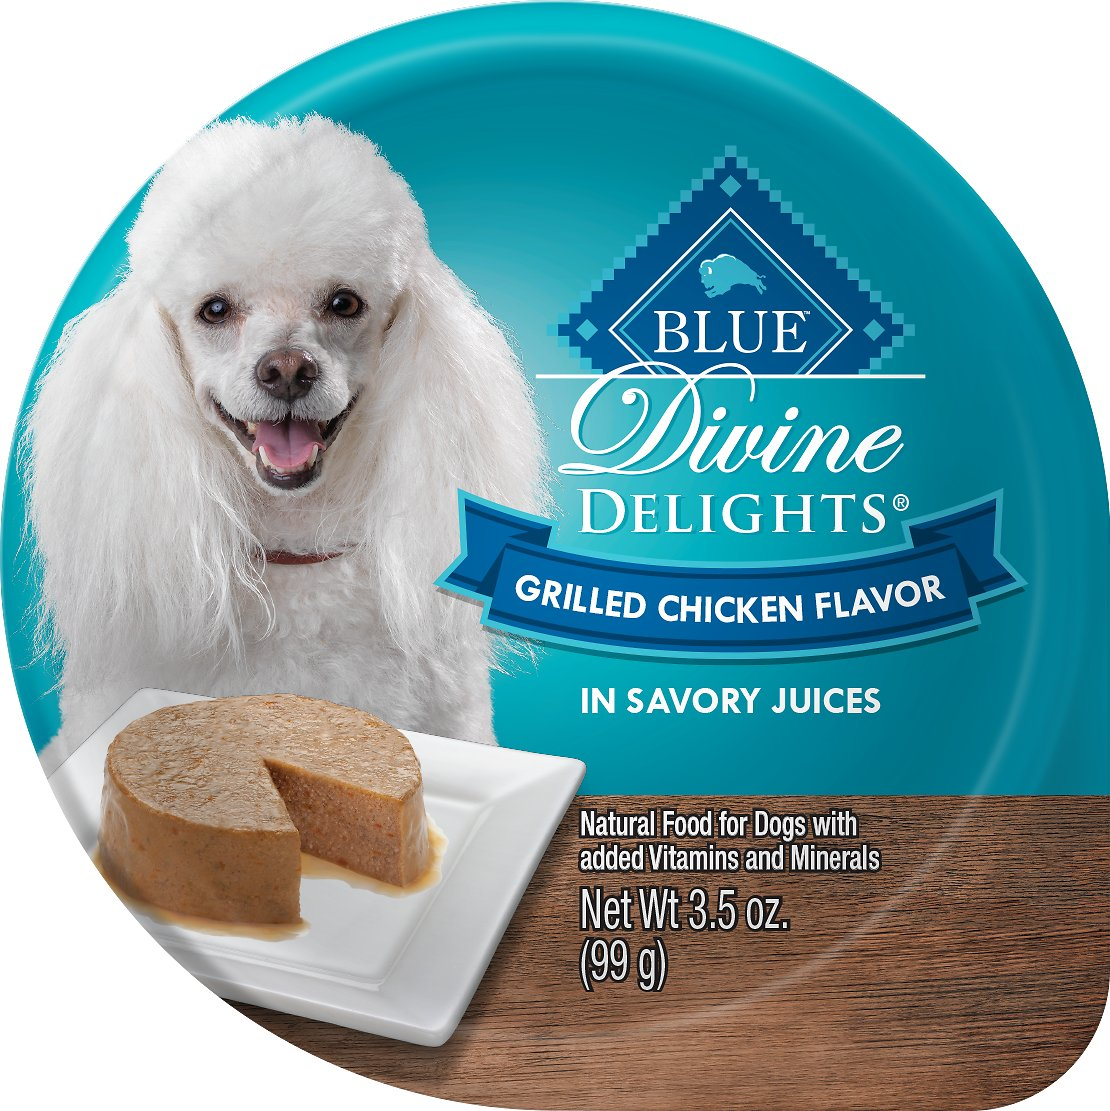 Blue Buffalo Divine Delights Grilled Chicken Flavor Pate Dog Food Trays, 3.5-oz